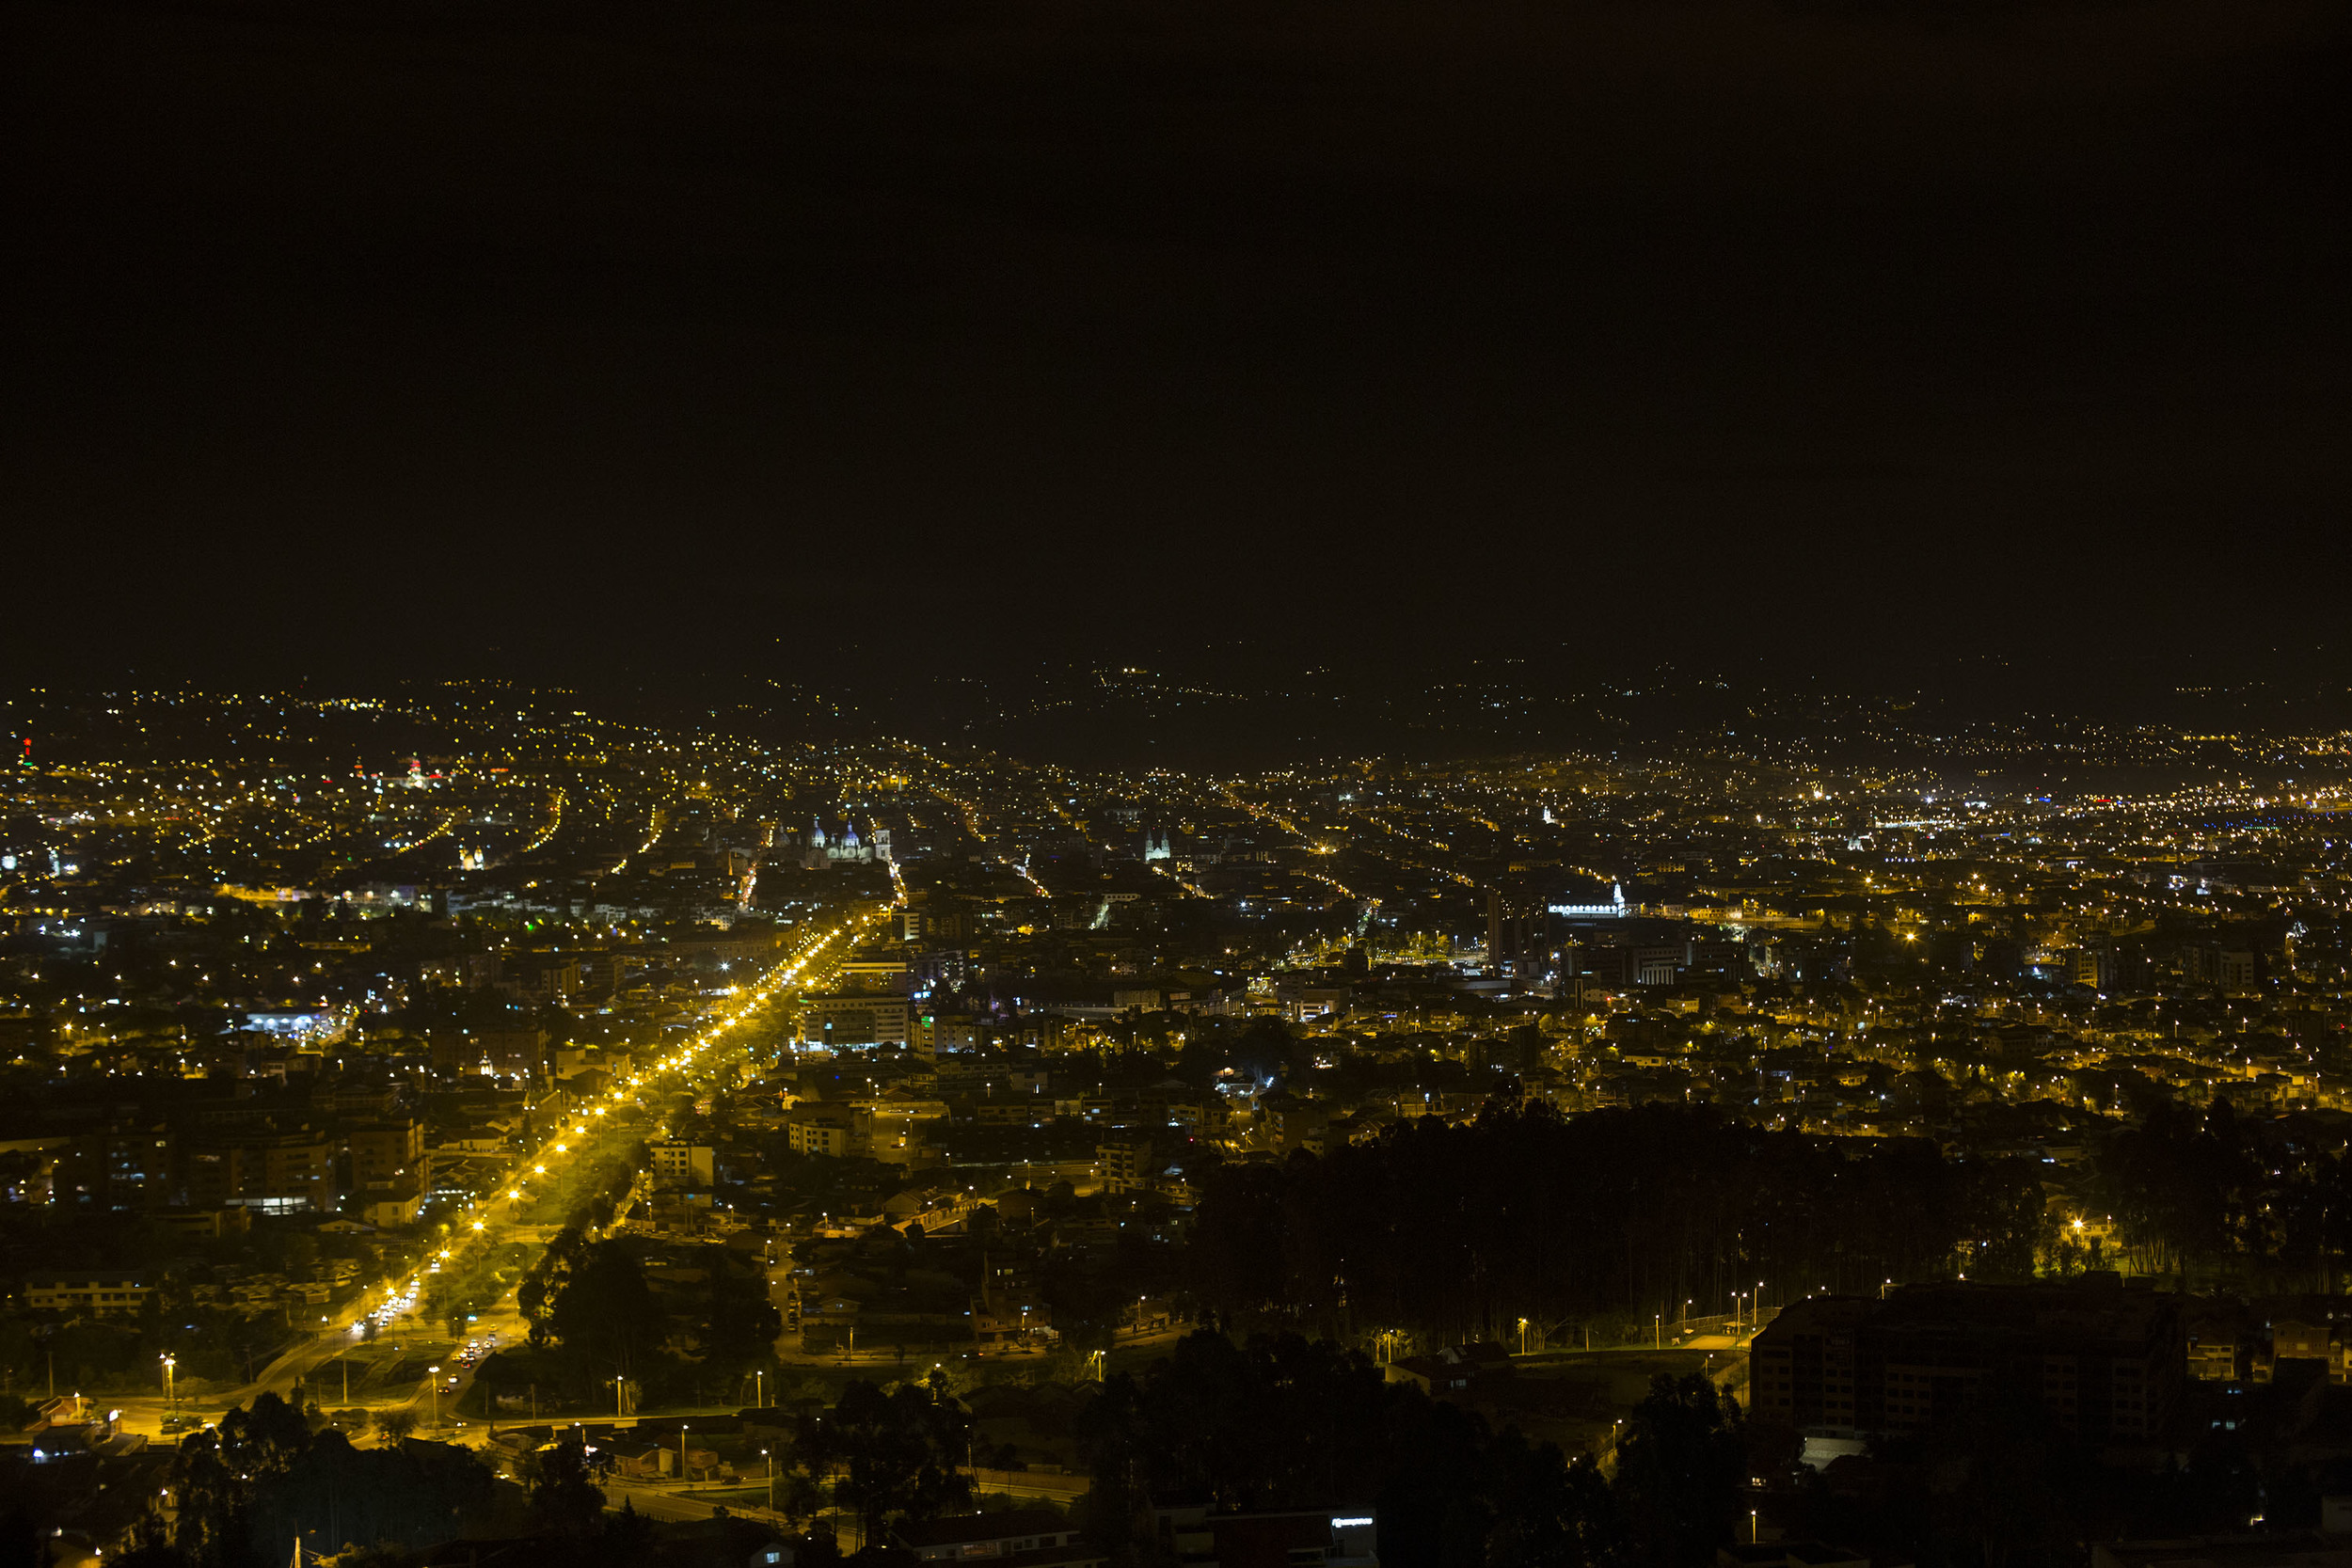 There are mountains arching up over those city lights, you just can't see them at night.